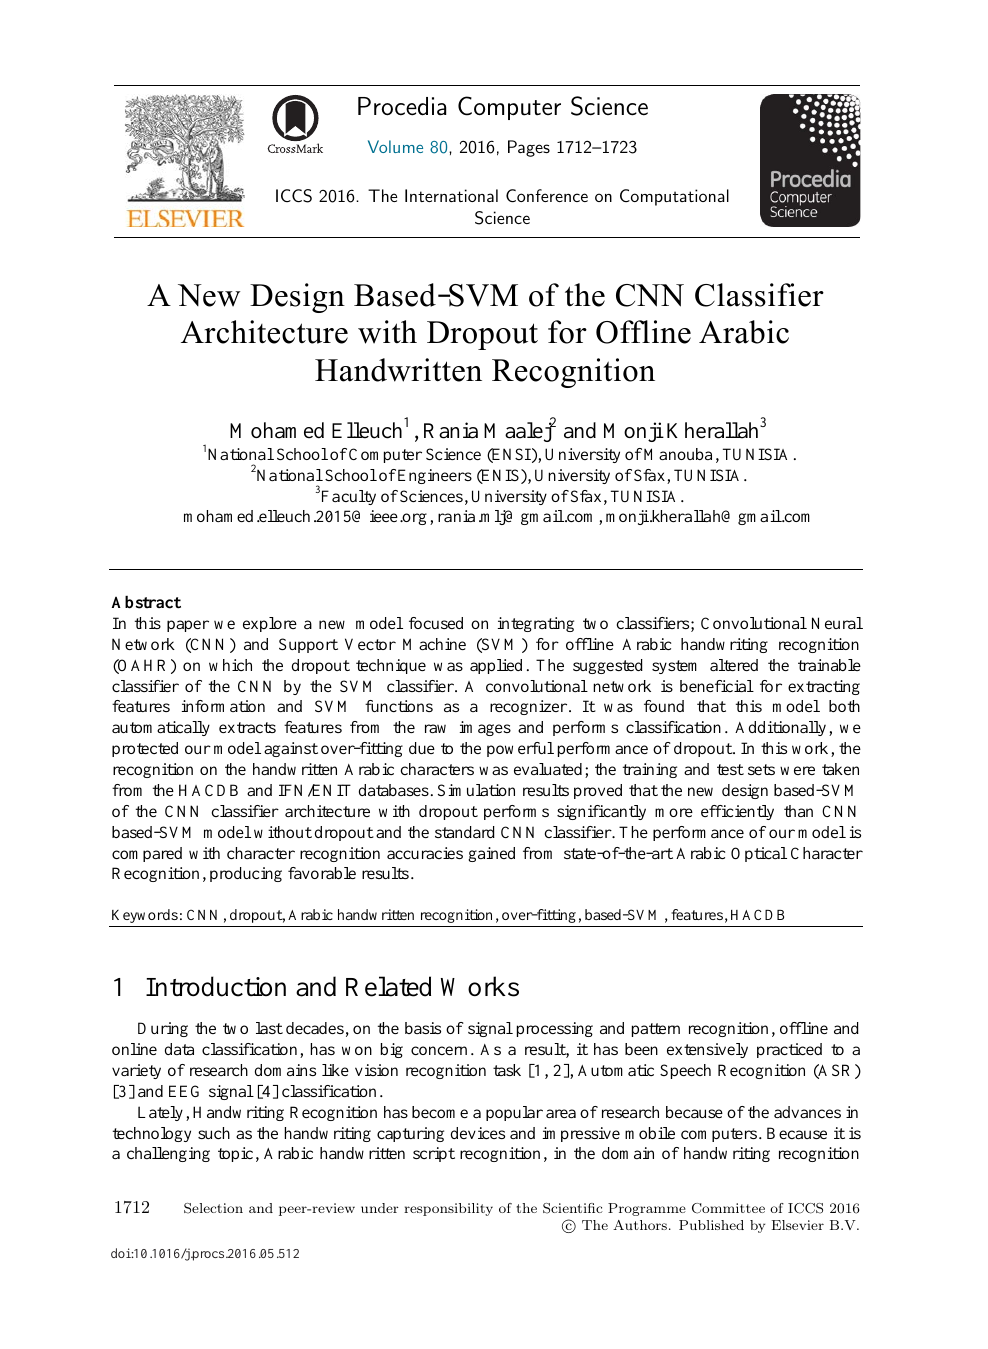 A New Design Based-SVM of the CNN Classifier Architecture with